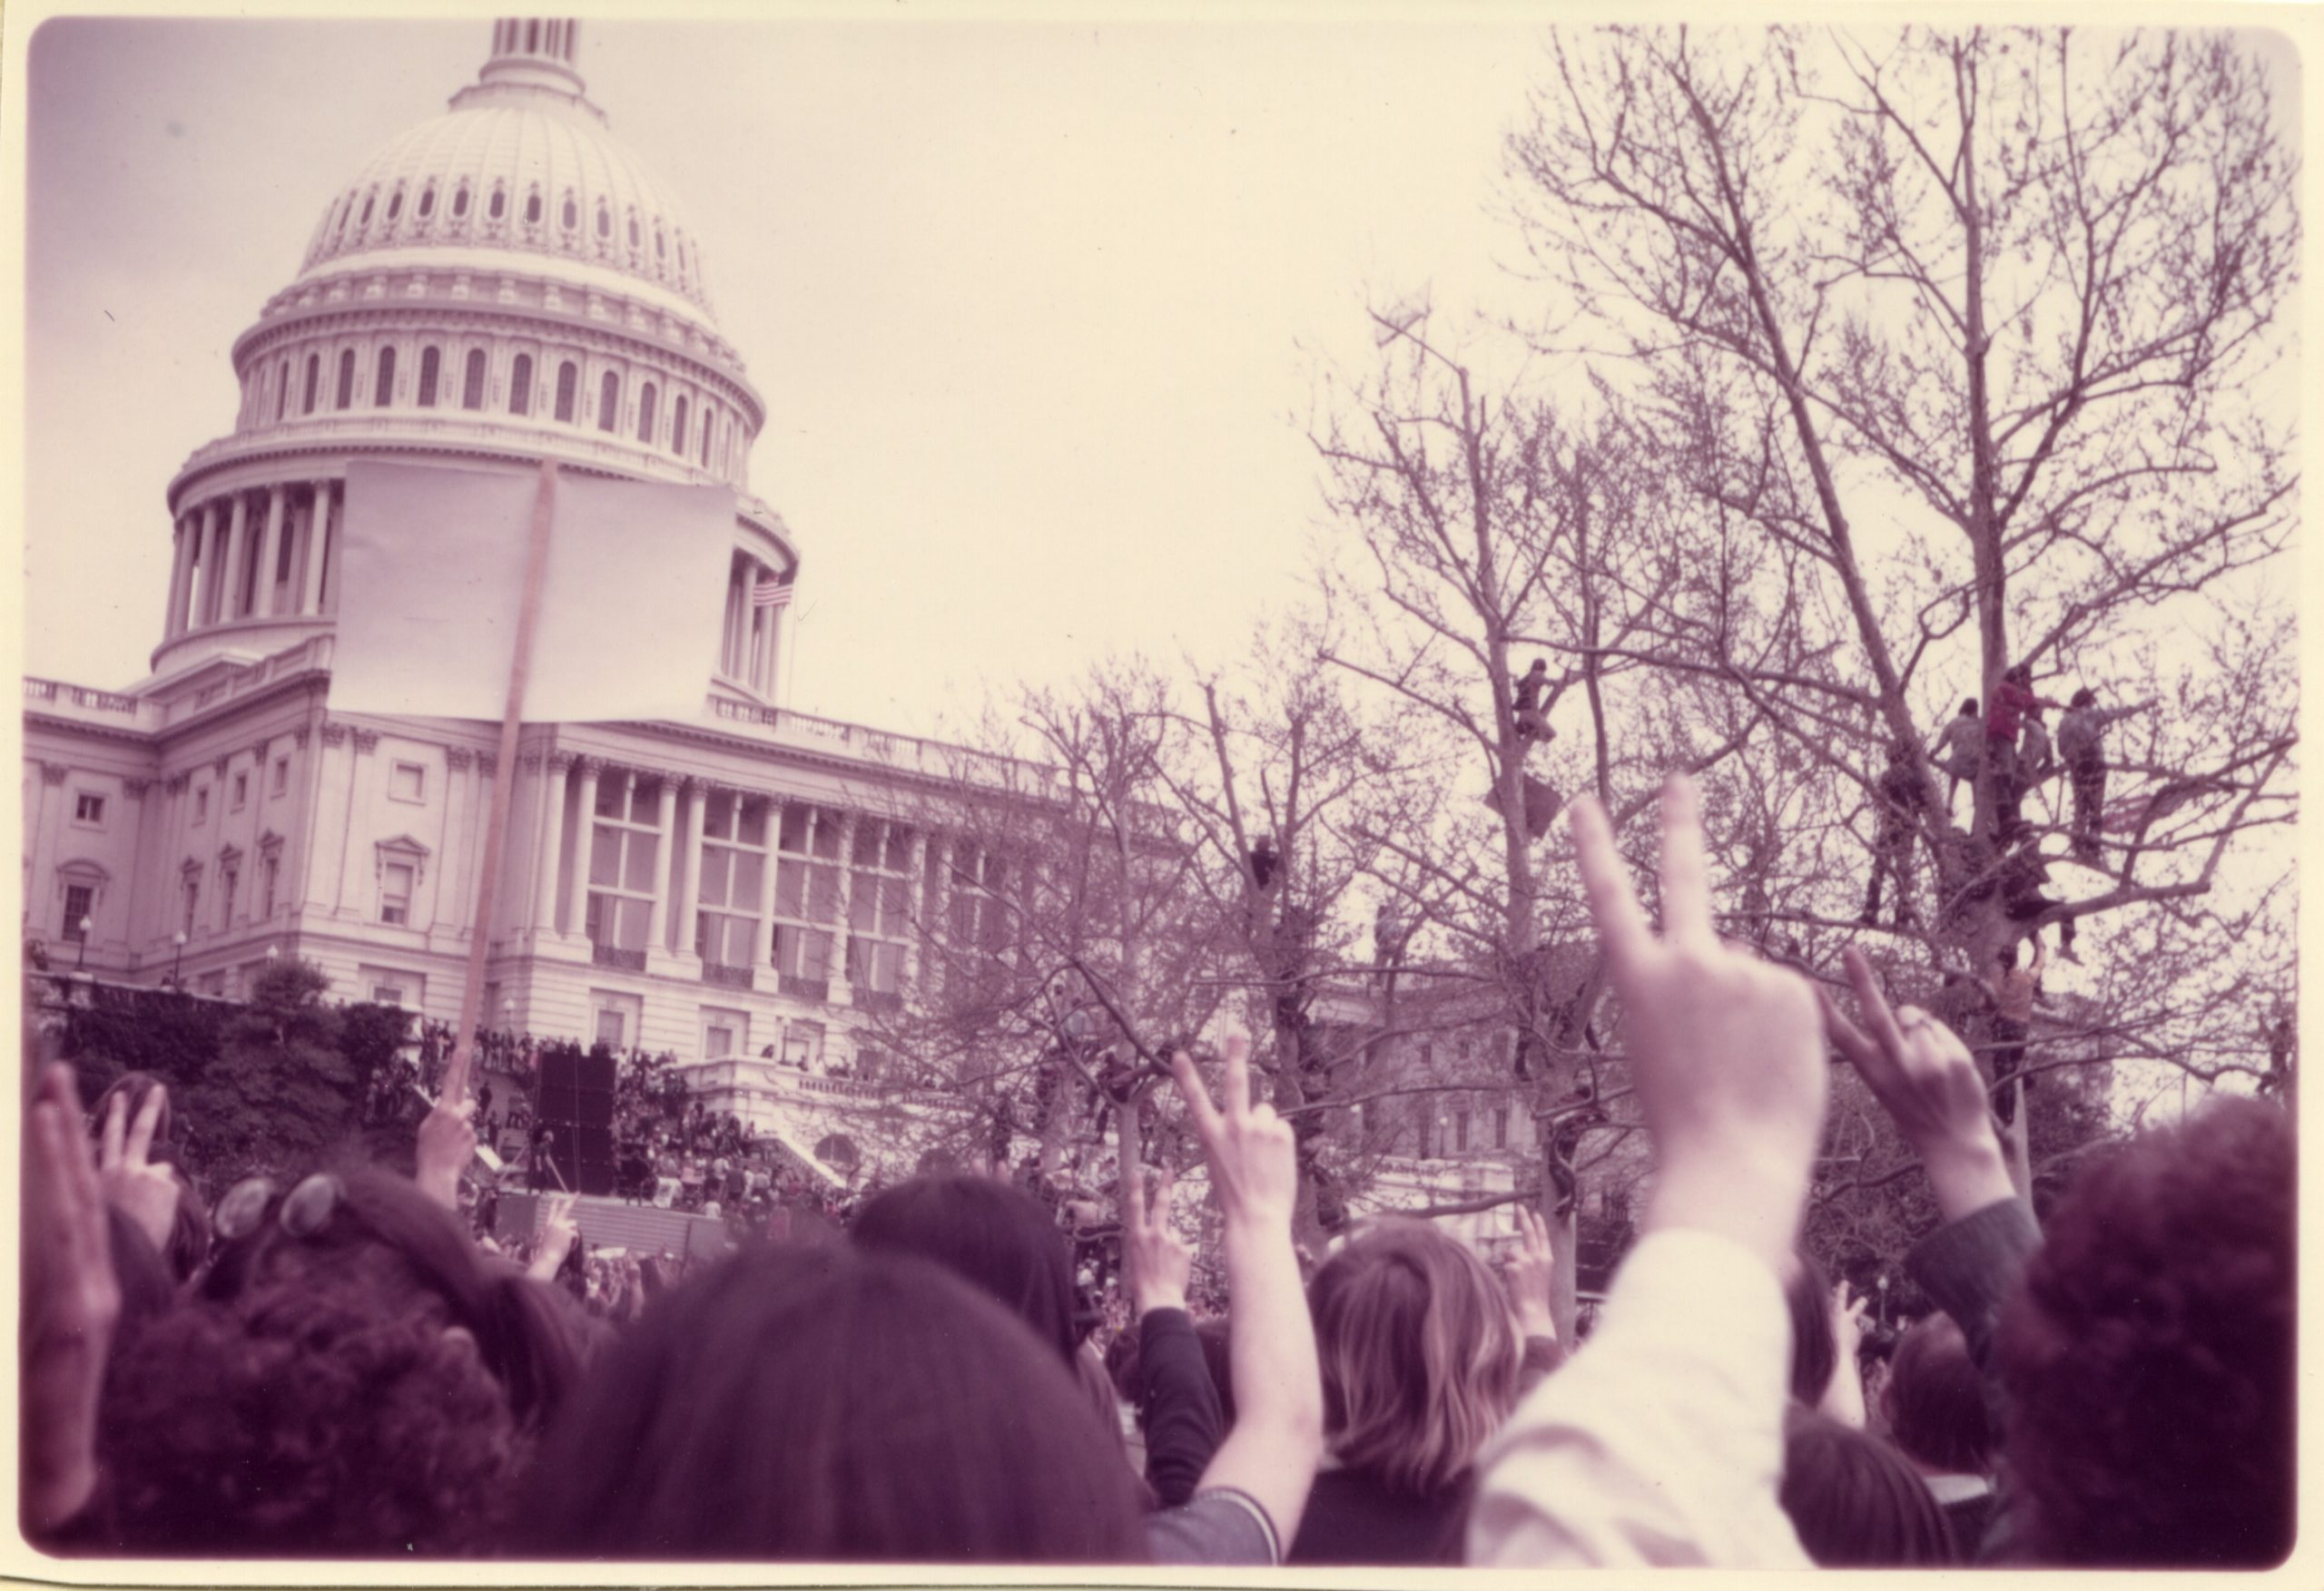 A large group of people standing outside the US Capitol building holding up their fingers in peace sign gestures.